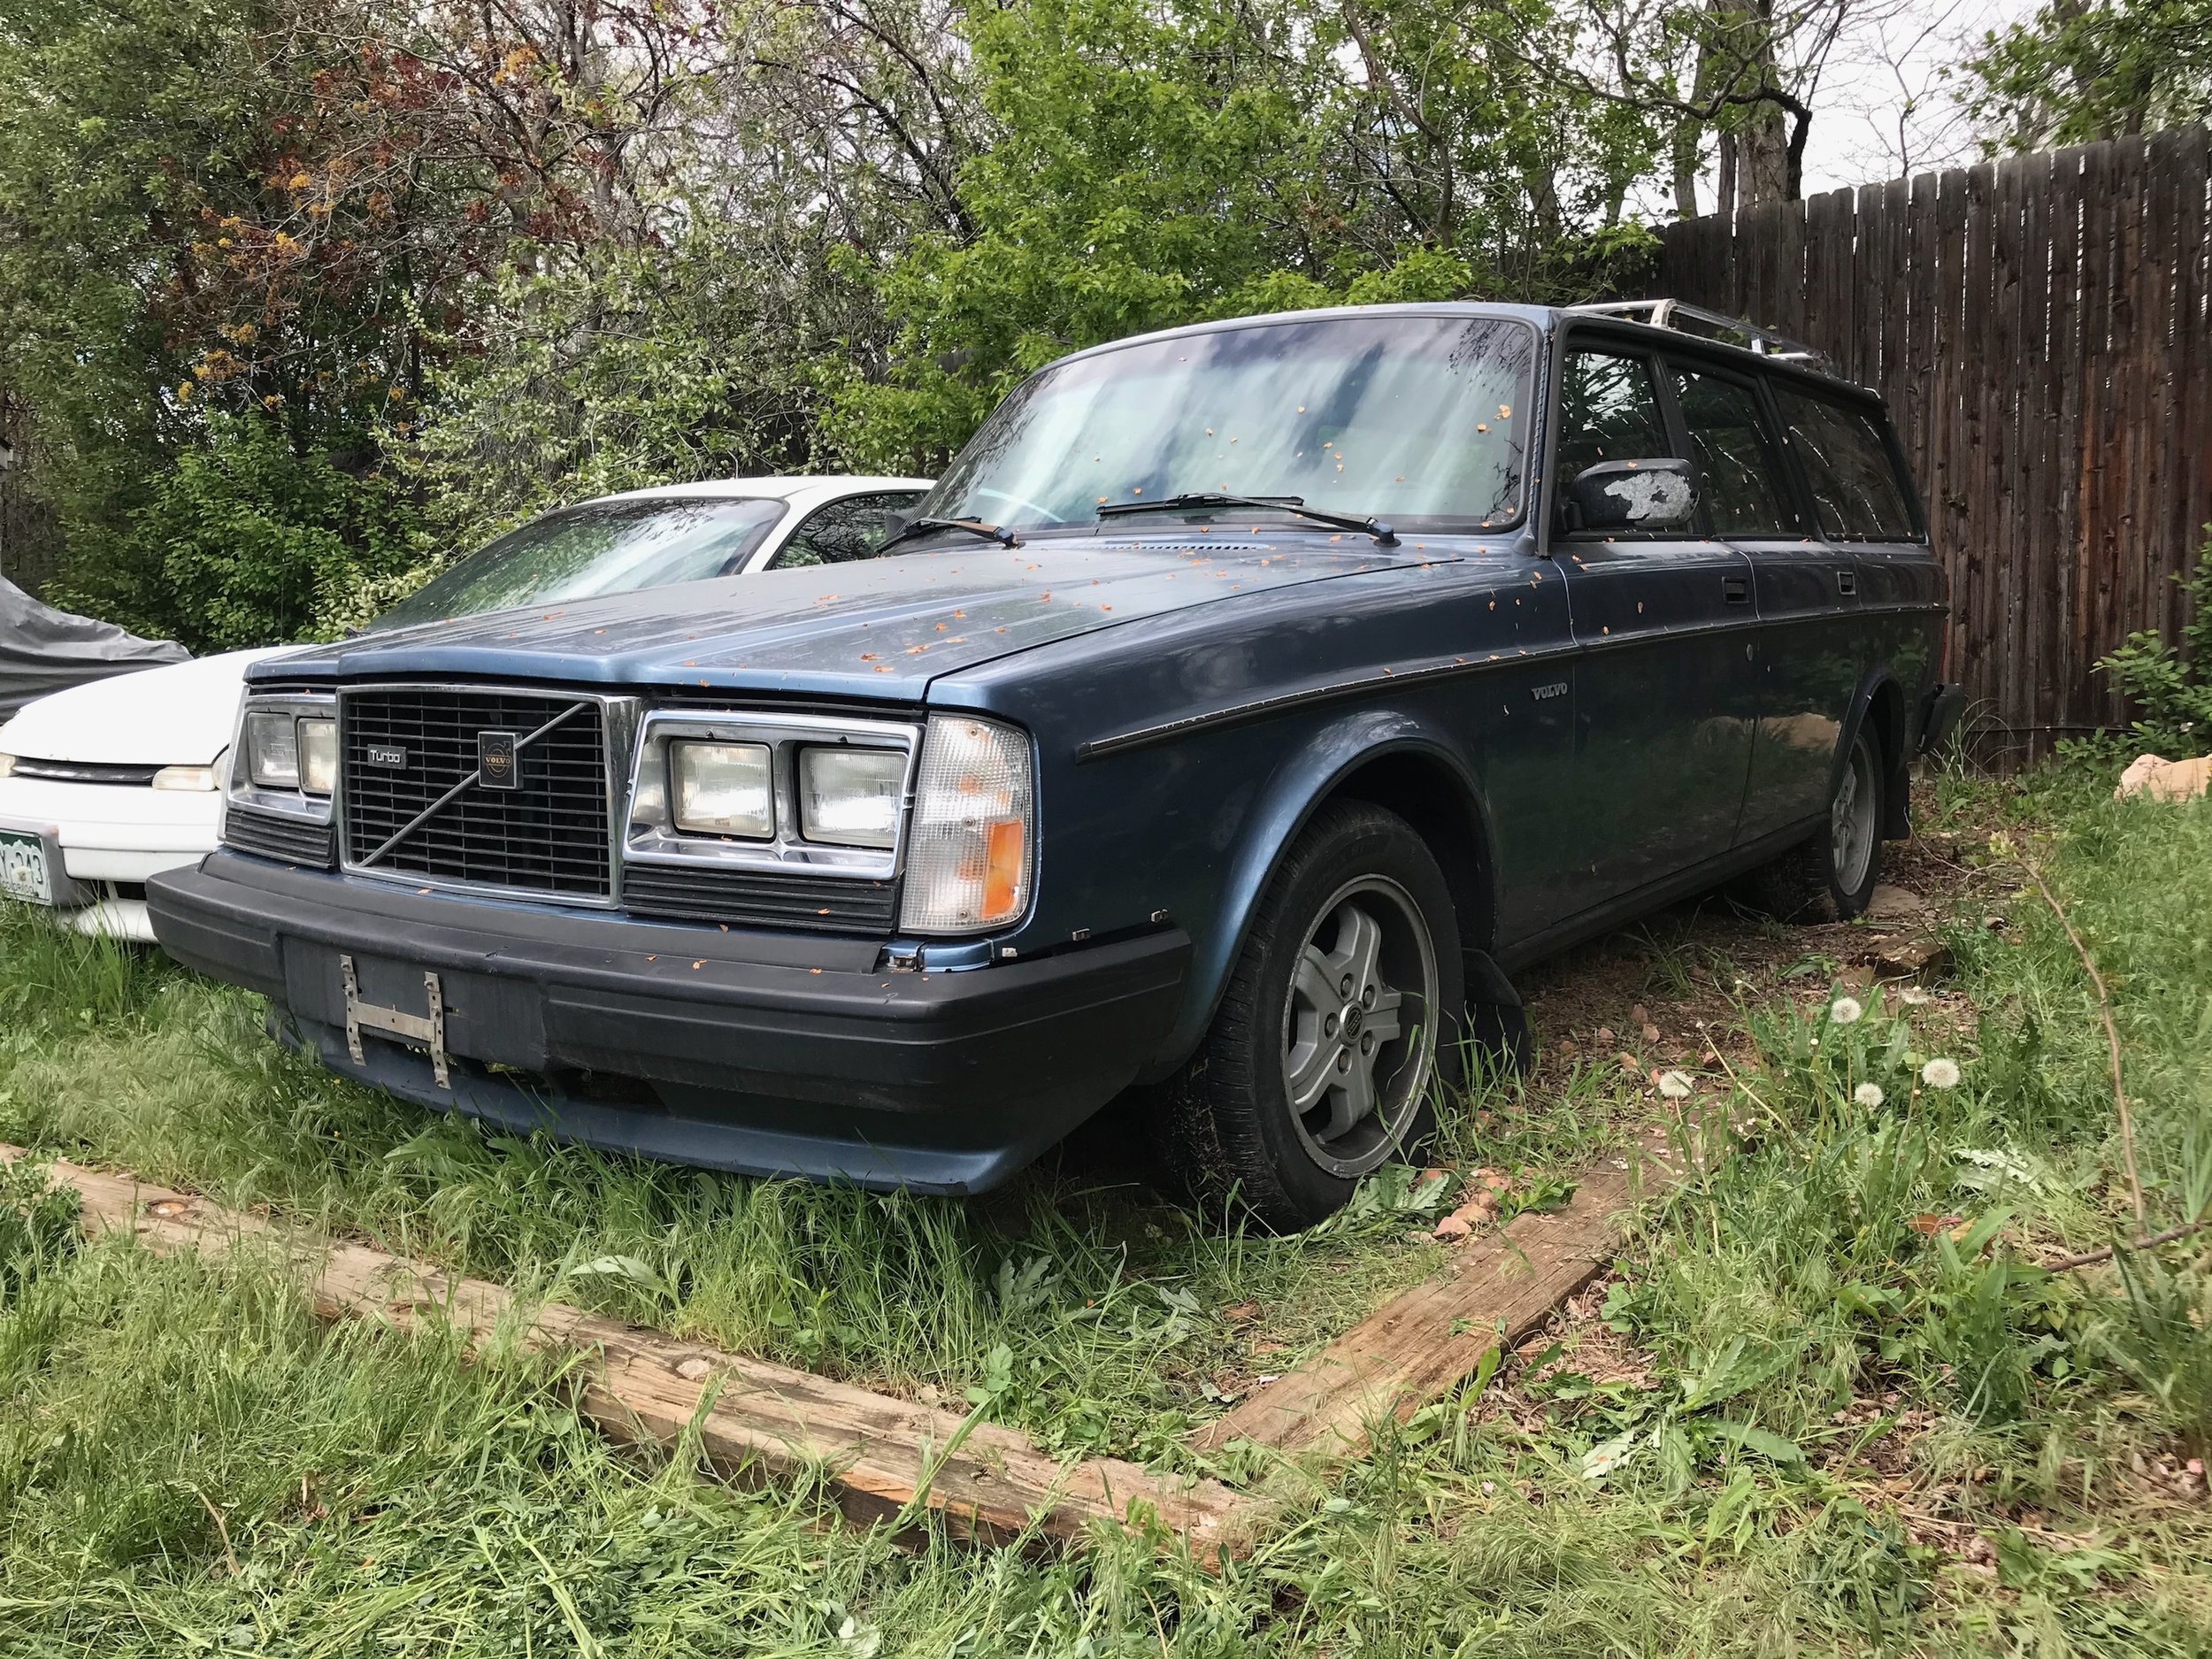 Dahl - '84 Volvo 245 Turbo - IN TRANSIT TO US - MORE INFO COMING SOON!